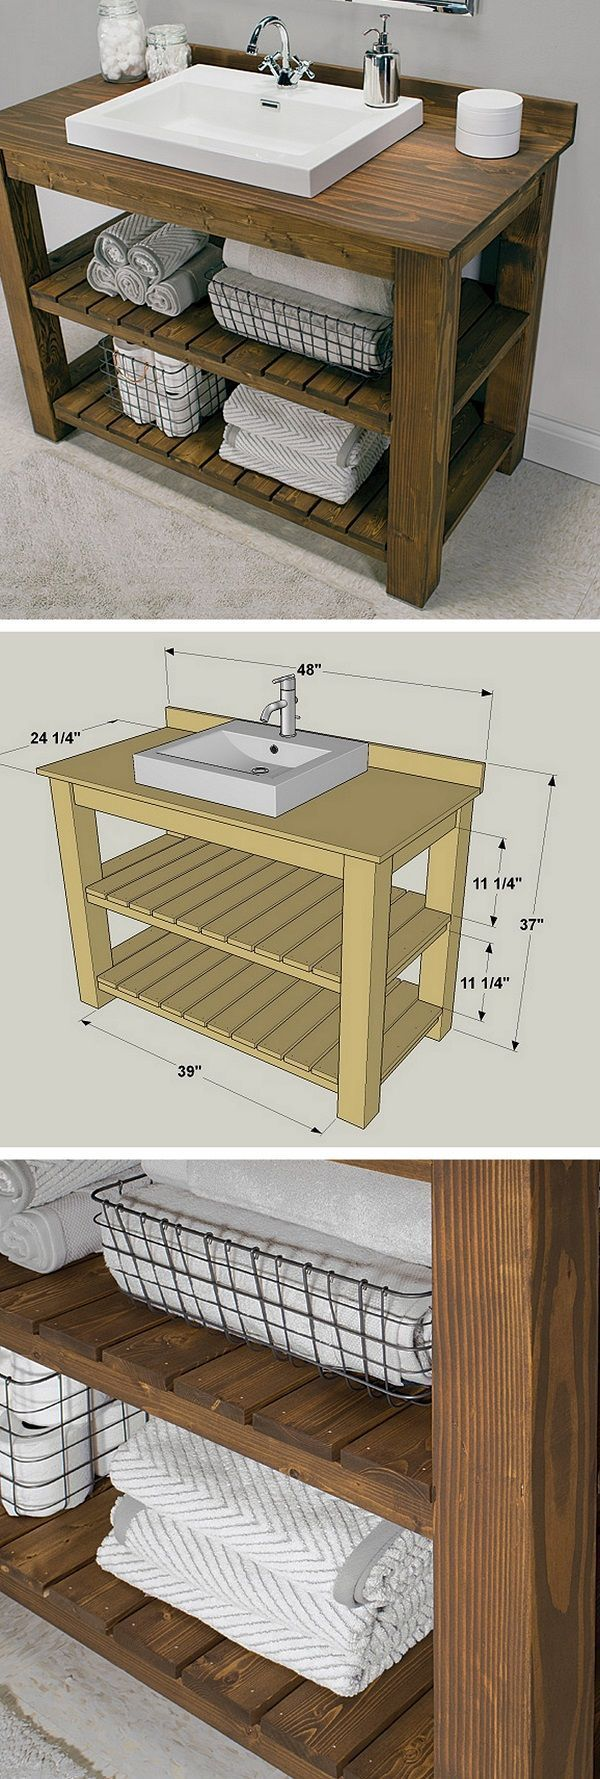 Photo of 24 simple DIY bathroom vanity plans for a quick makeover …